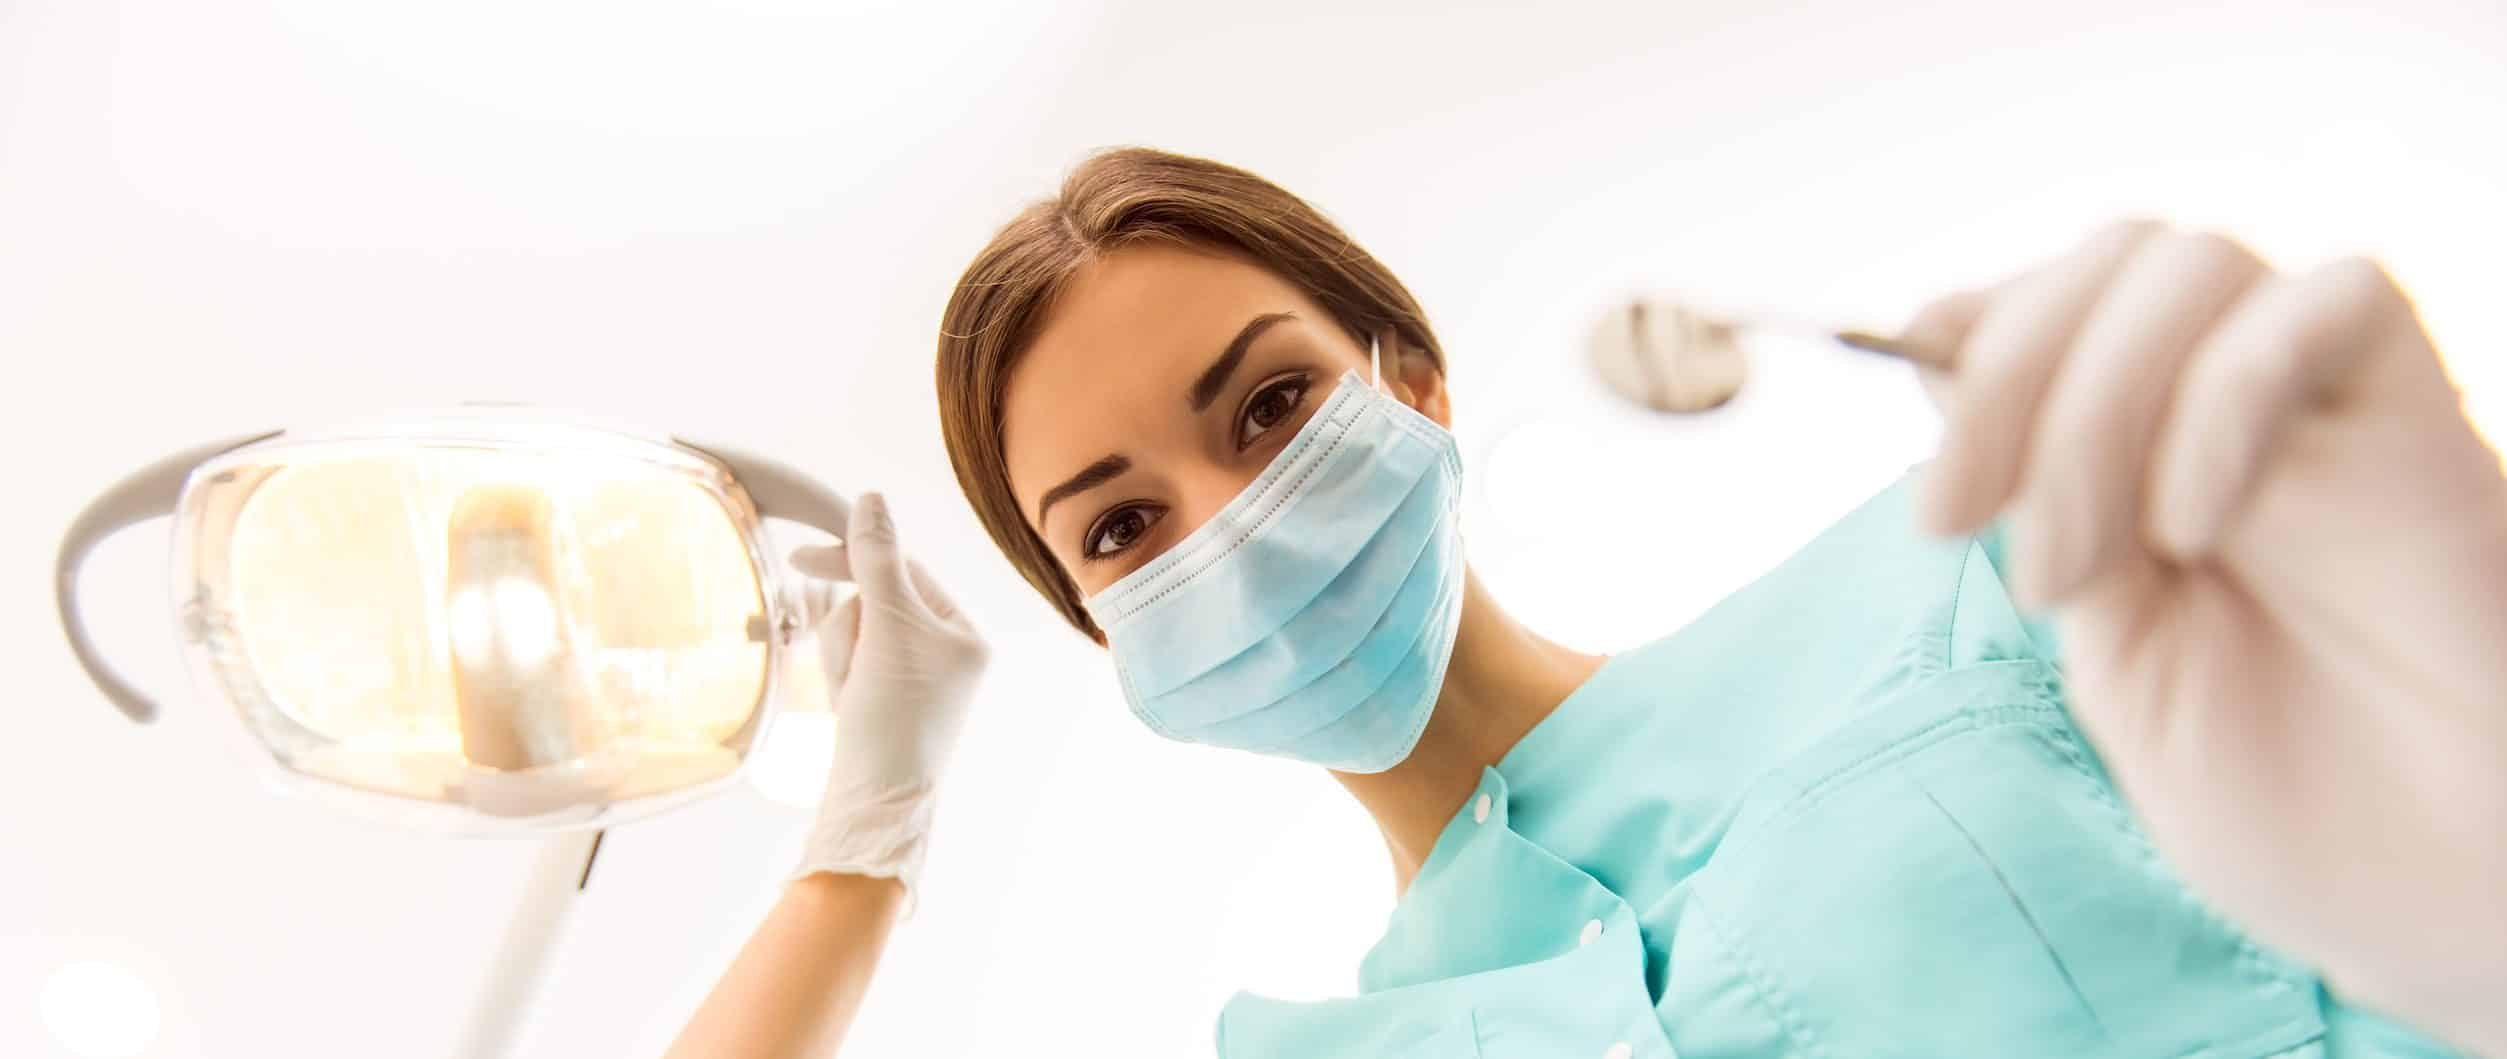 Dental Assistant - Safety Solutions